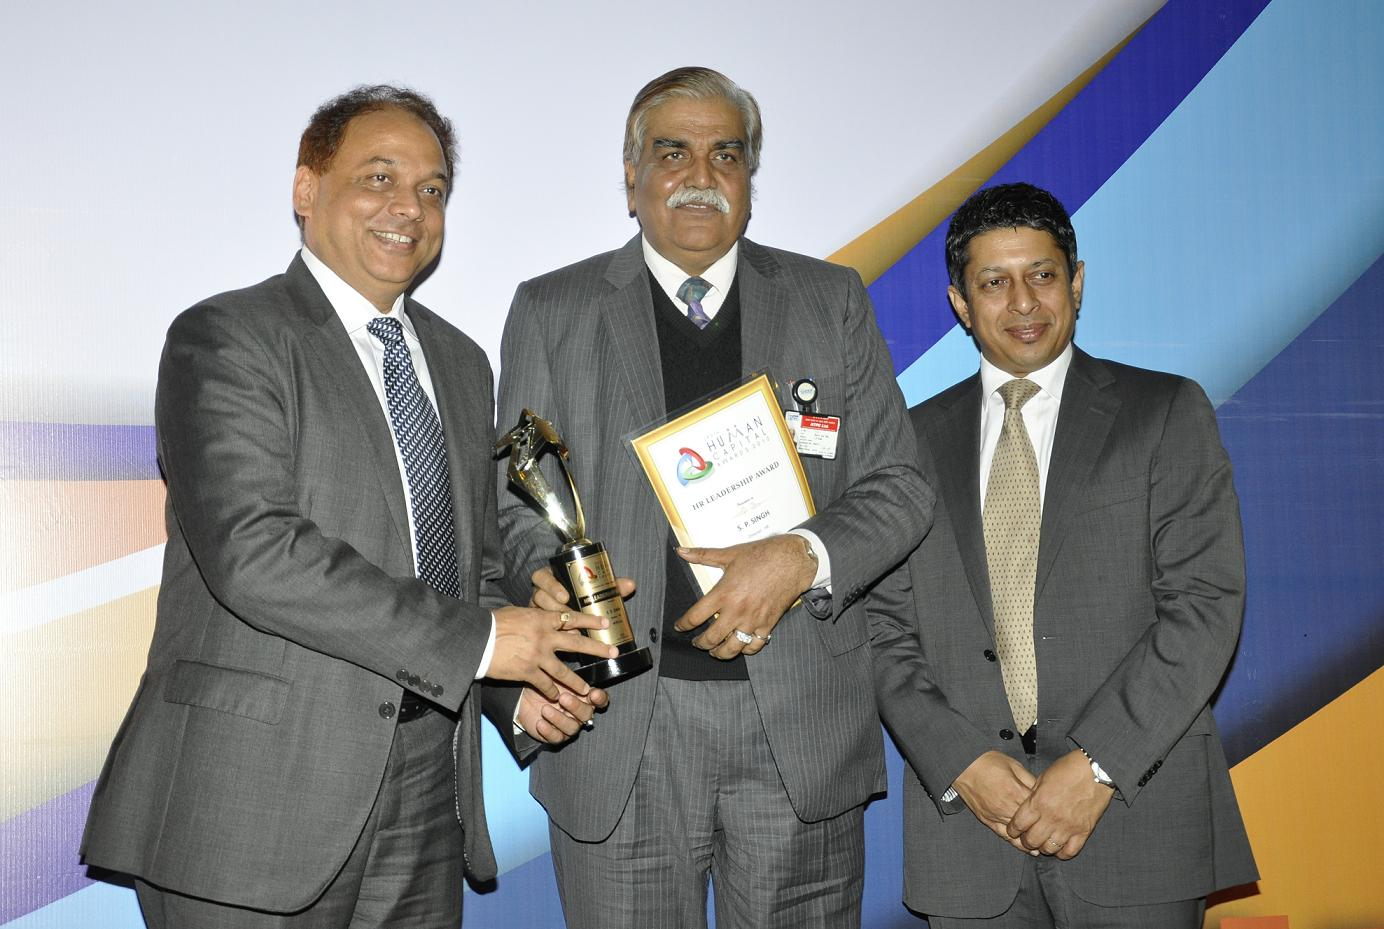 HR Leadership Award